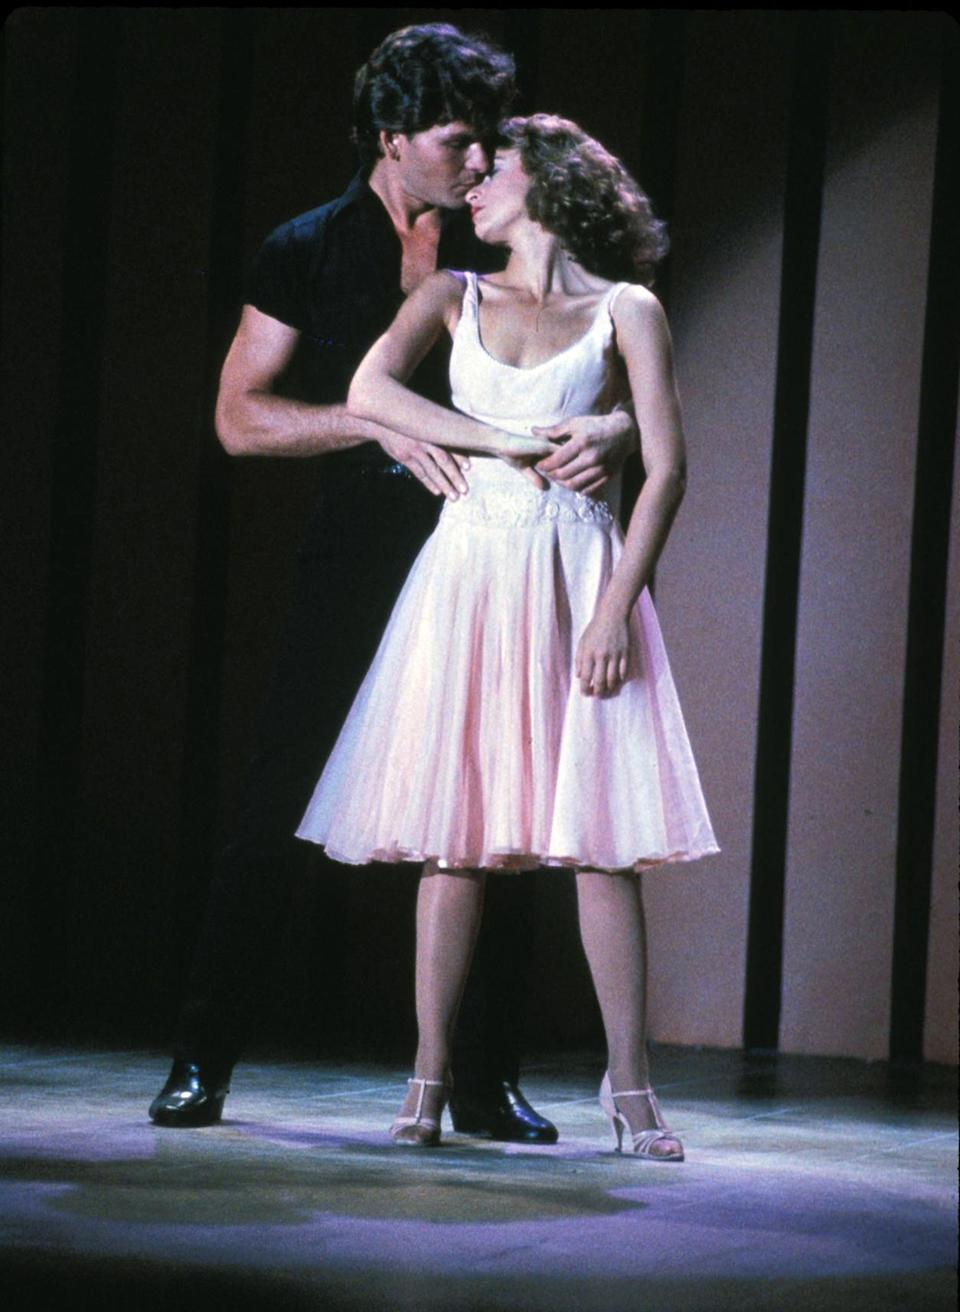 "FILE - In this image provided by Lionsgate Home Entertainment, Patrick Swayze, portraying Johnny Castle, and Jennifer Grey, portraying Baby Houseman, are shown in a scene from the film, ""Dirty Dancing."" Lionsgate is set to produce a remake of the film directed by Kenny Ortega. (AP Photo/Lionsgate Home Entertainment)"